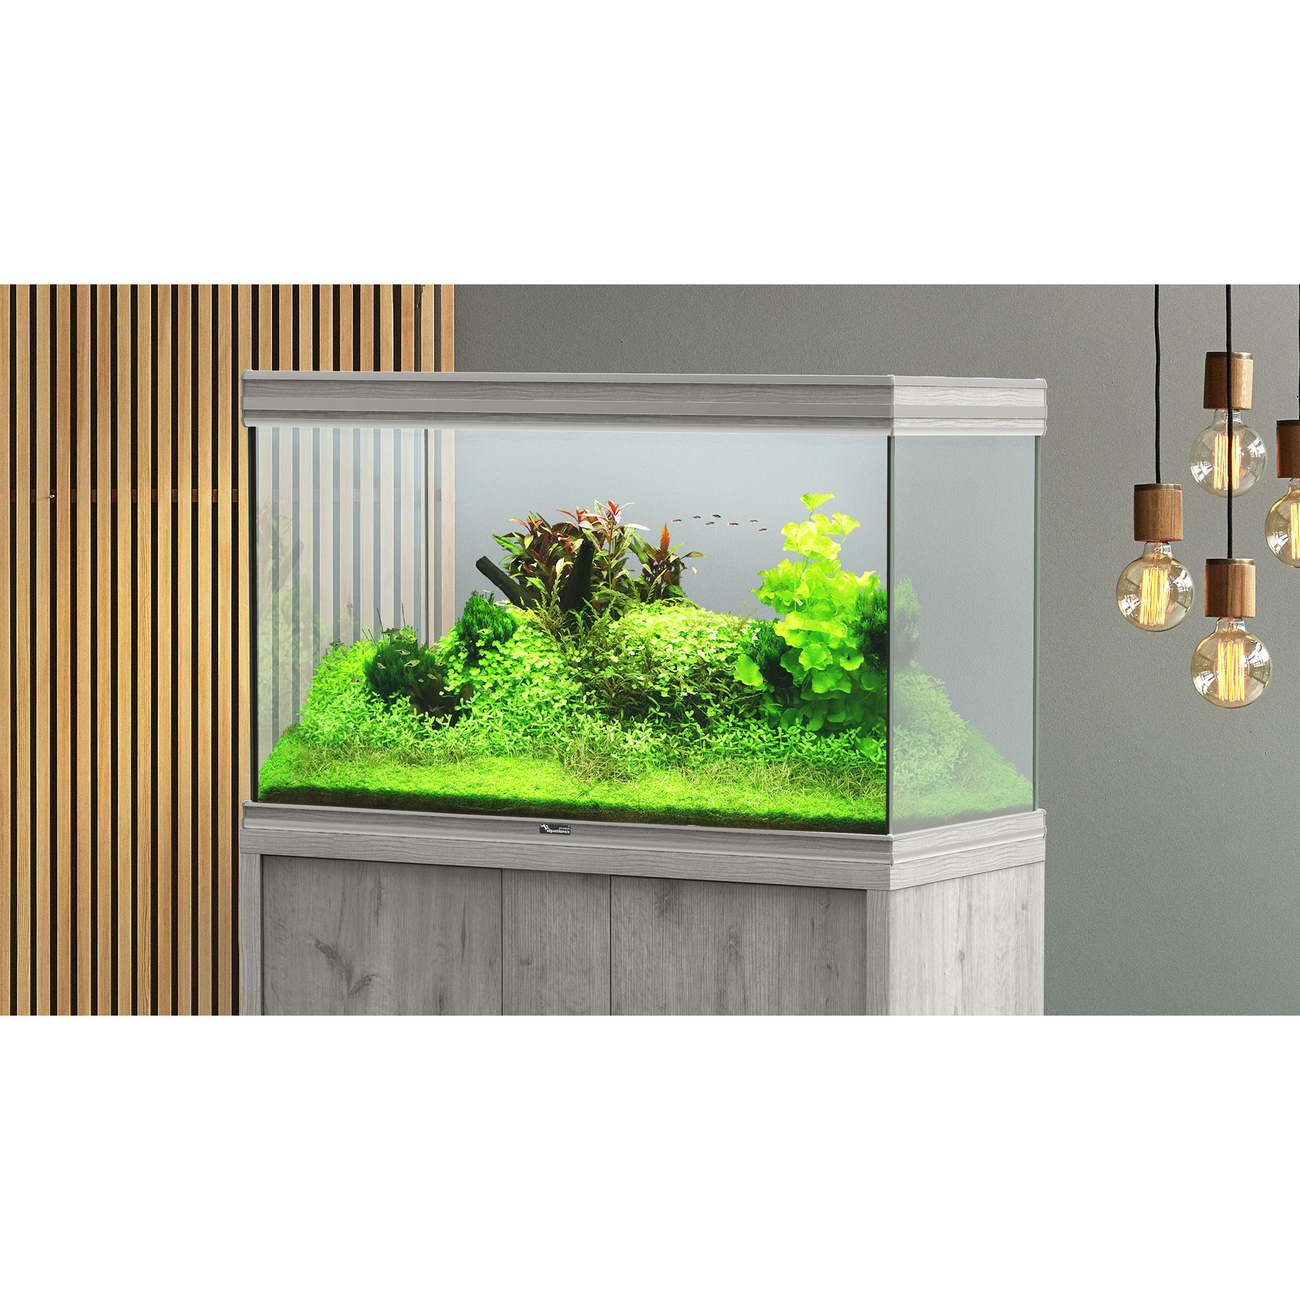 Aquatlantis FUSION LED 2.0 Aquarium Kombination, Bild 21